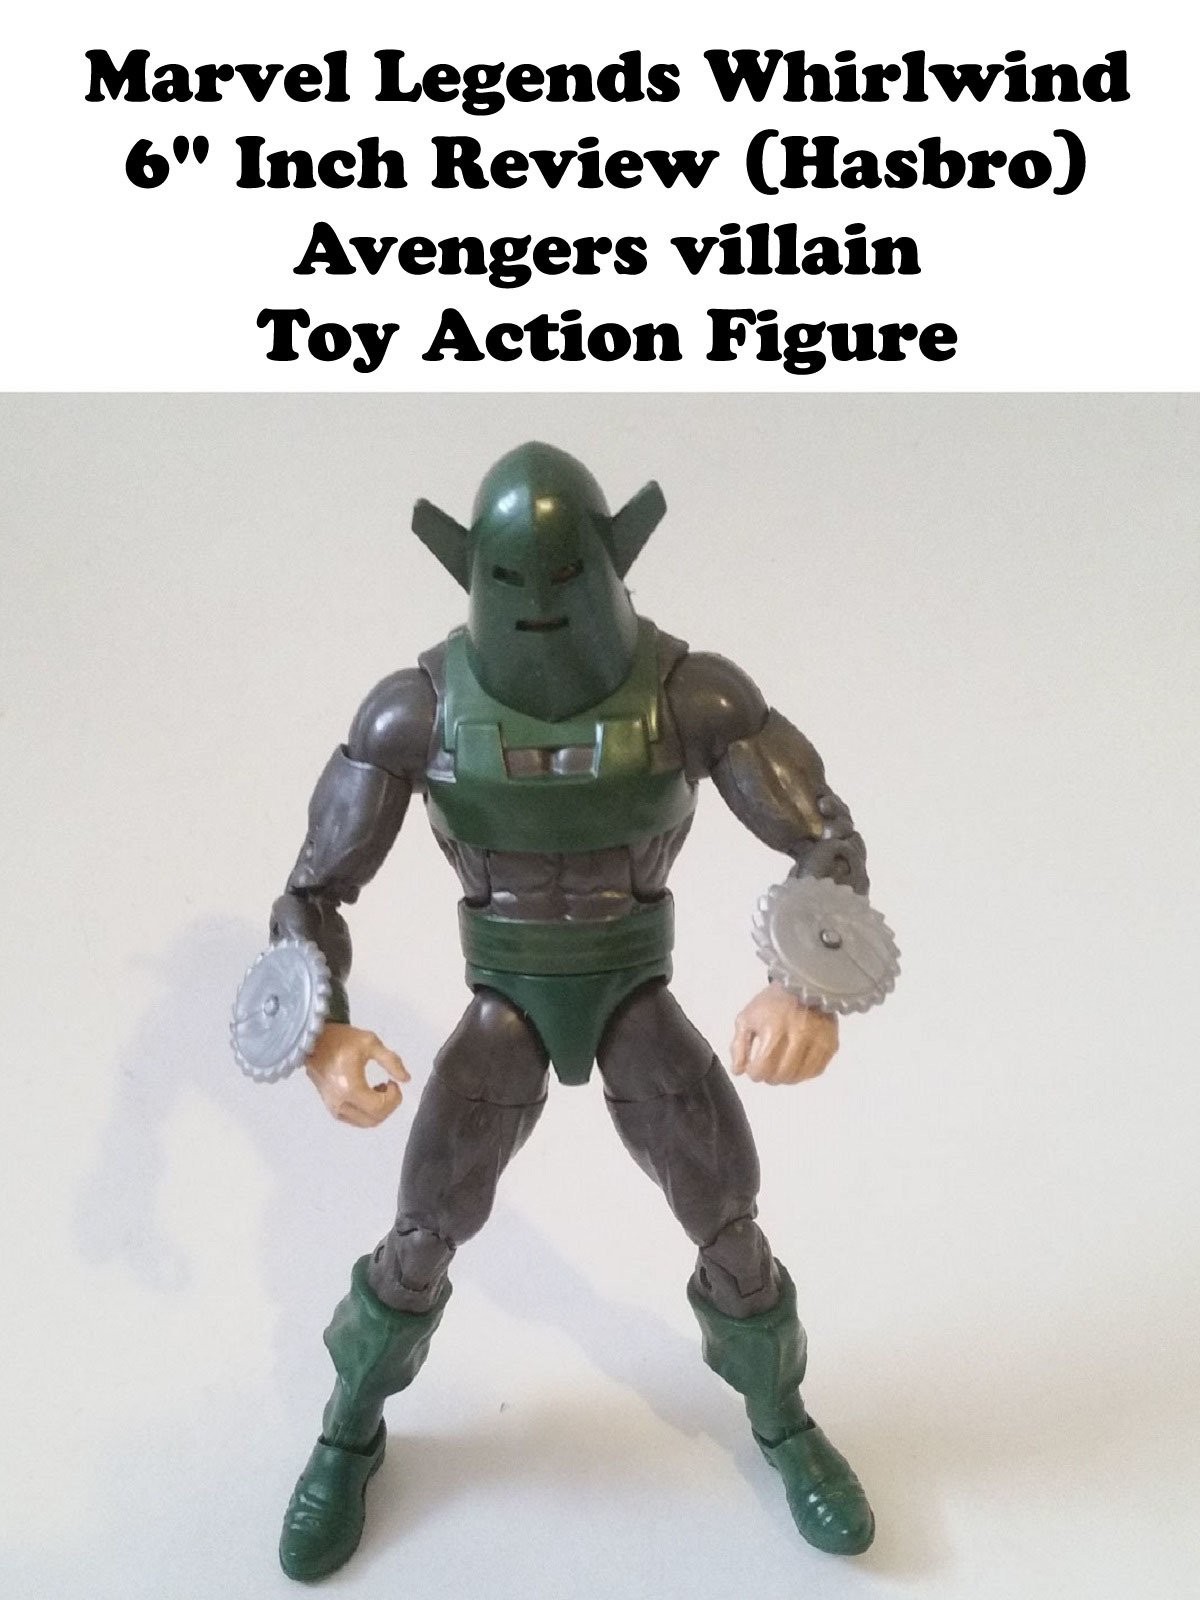 "Review: Marvel Legends Whirlwind 6"" Inch Review (Hasbro) Avengers villain Toy Action Figure"